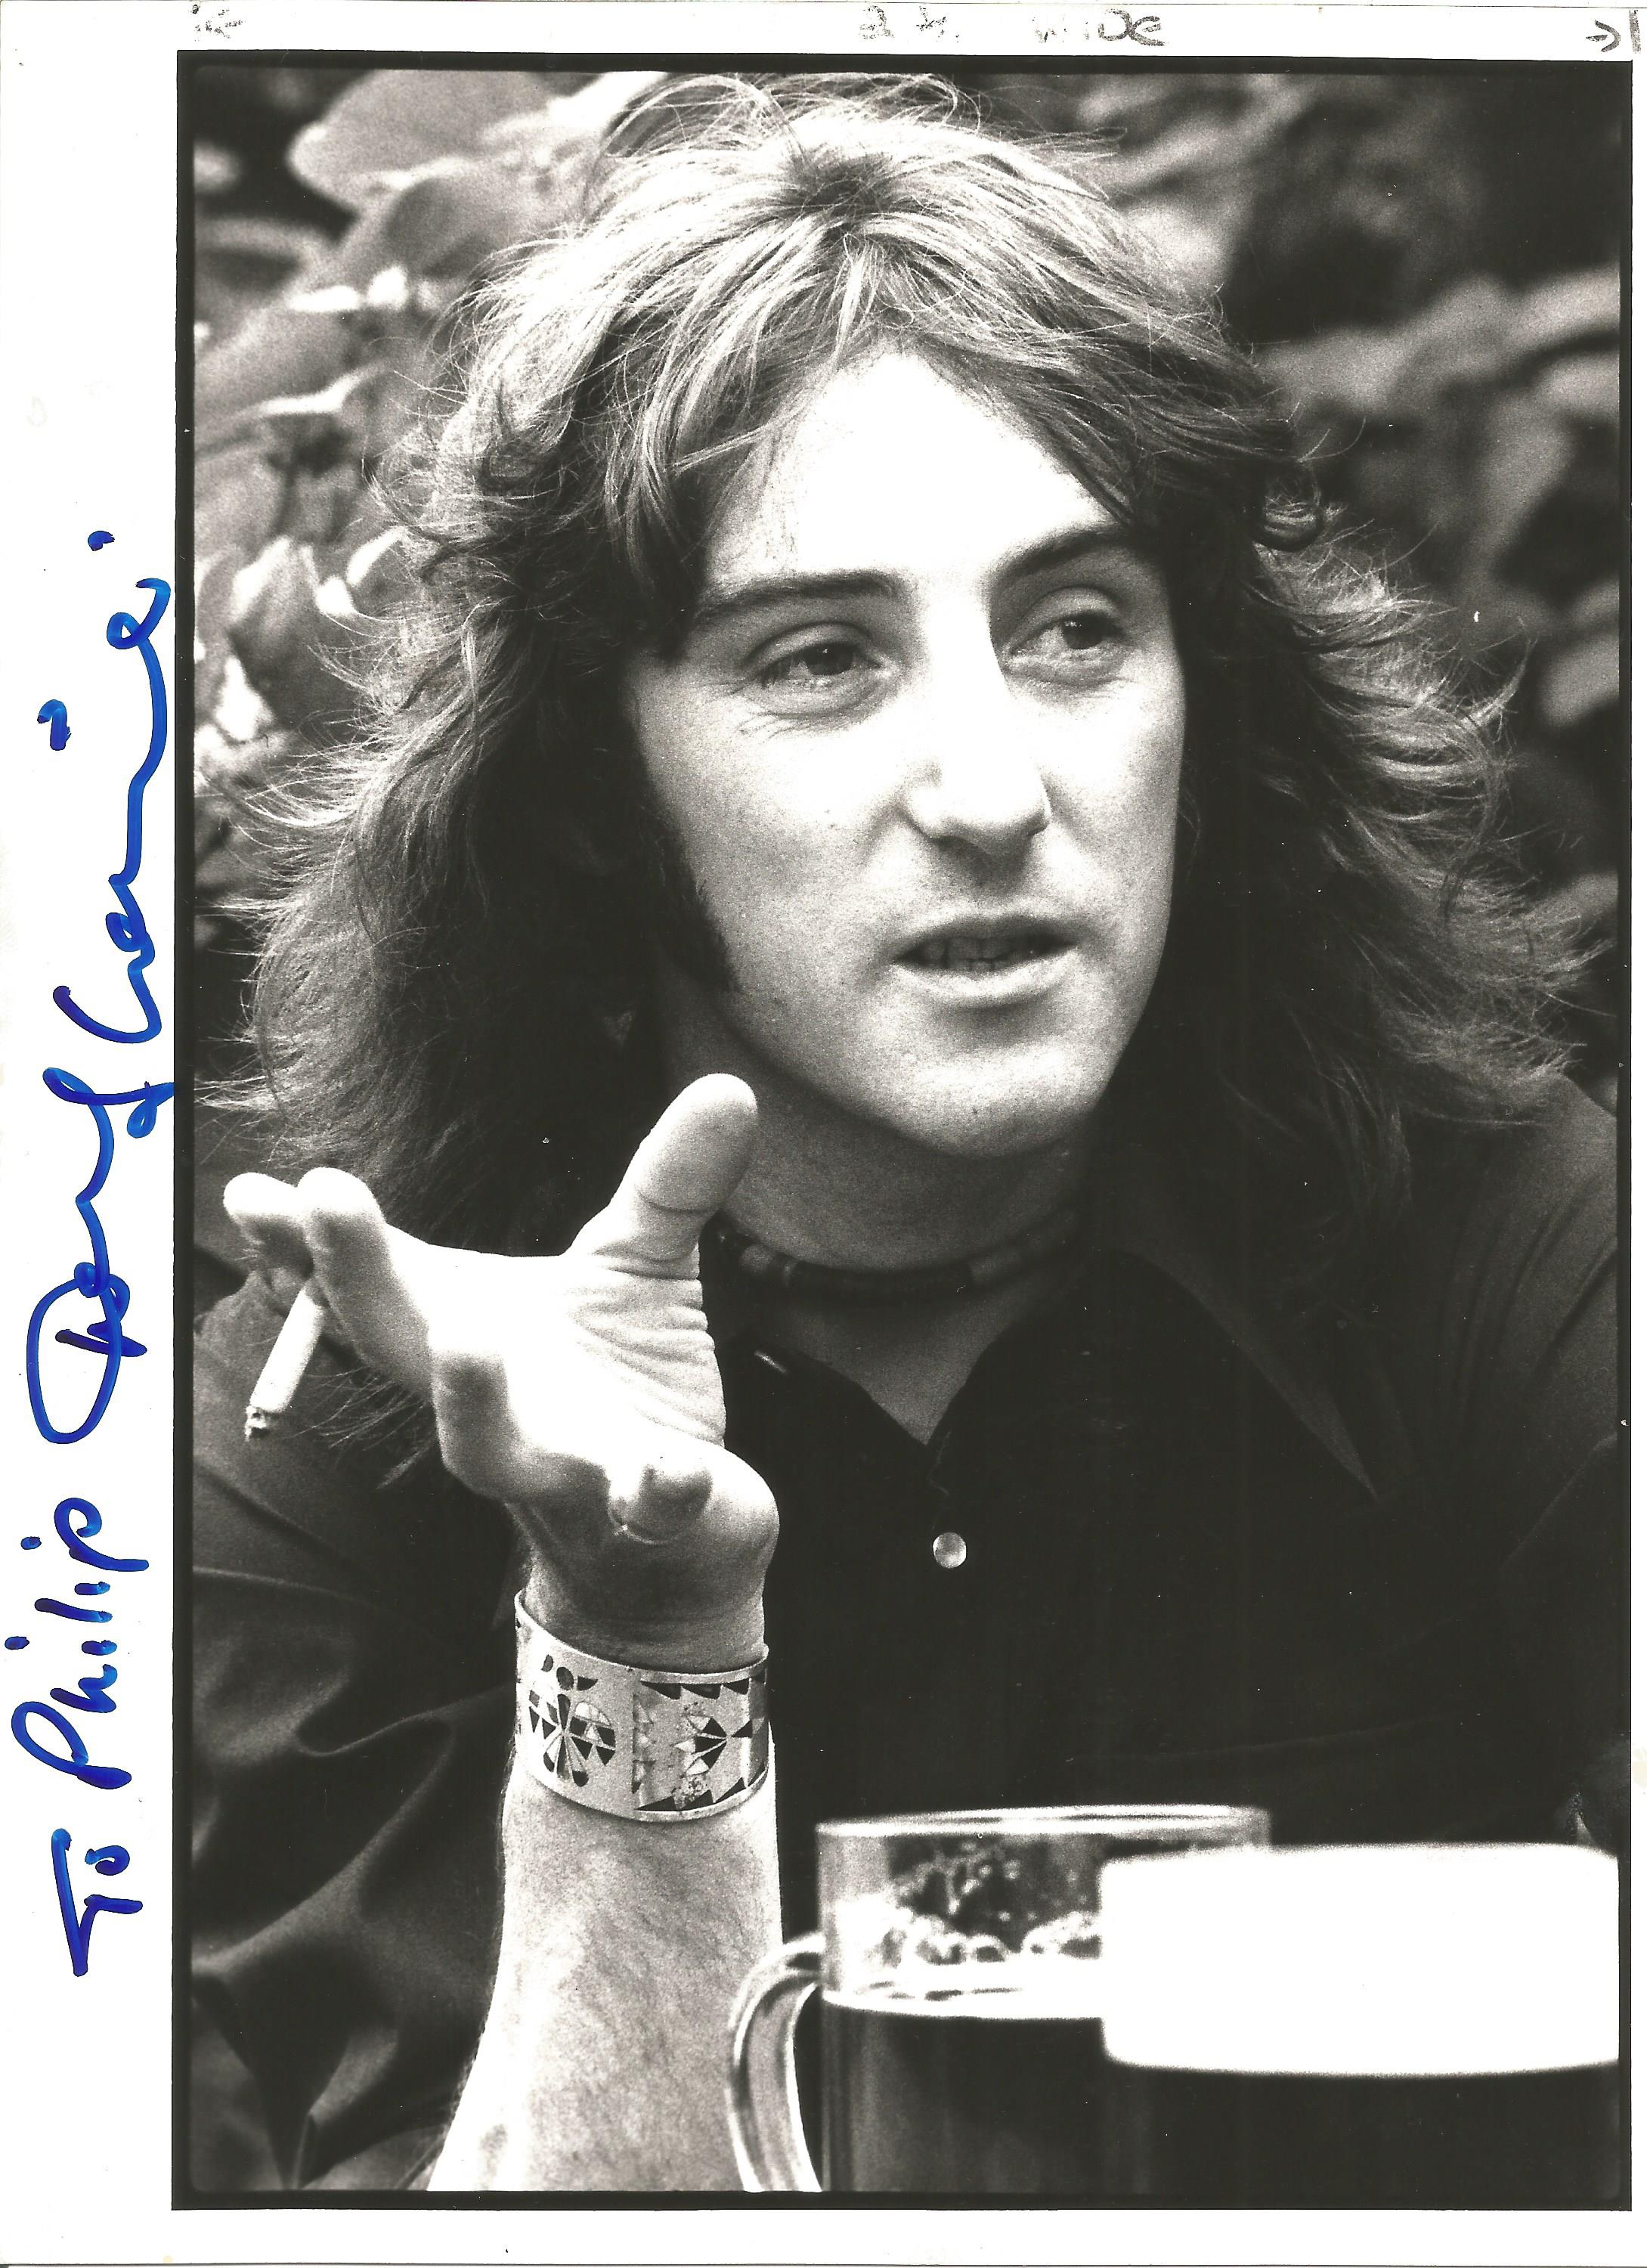 Musician Denny Laine signed 10x8 black and white photo. Denny Laine is an English musician,